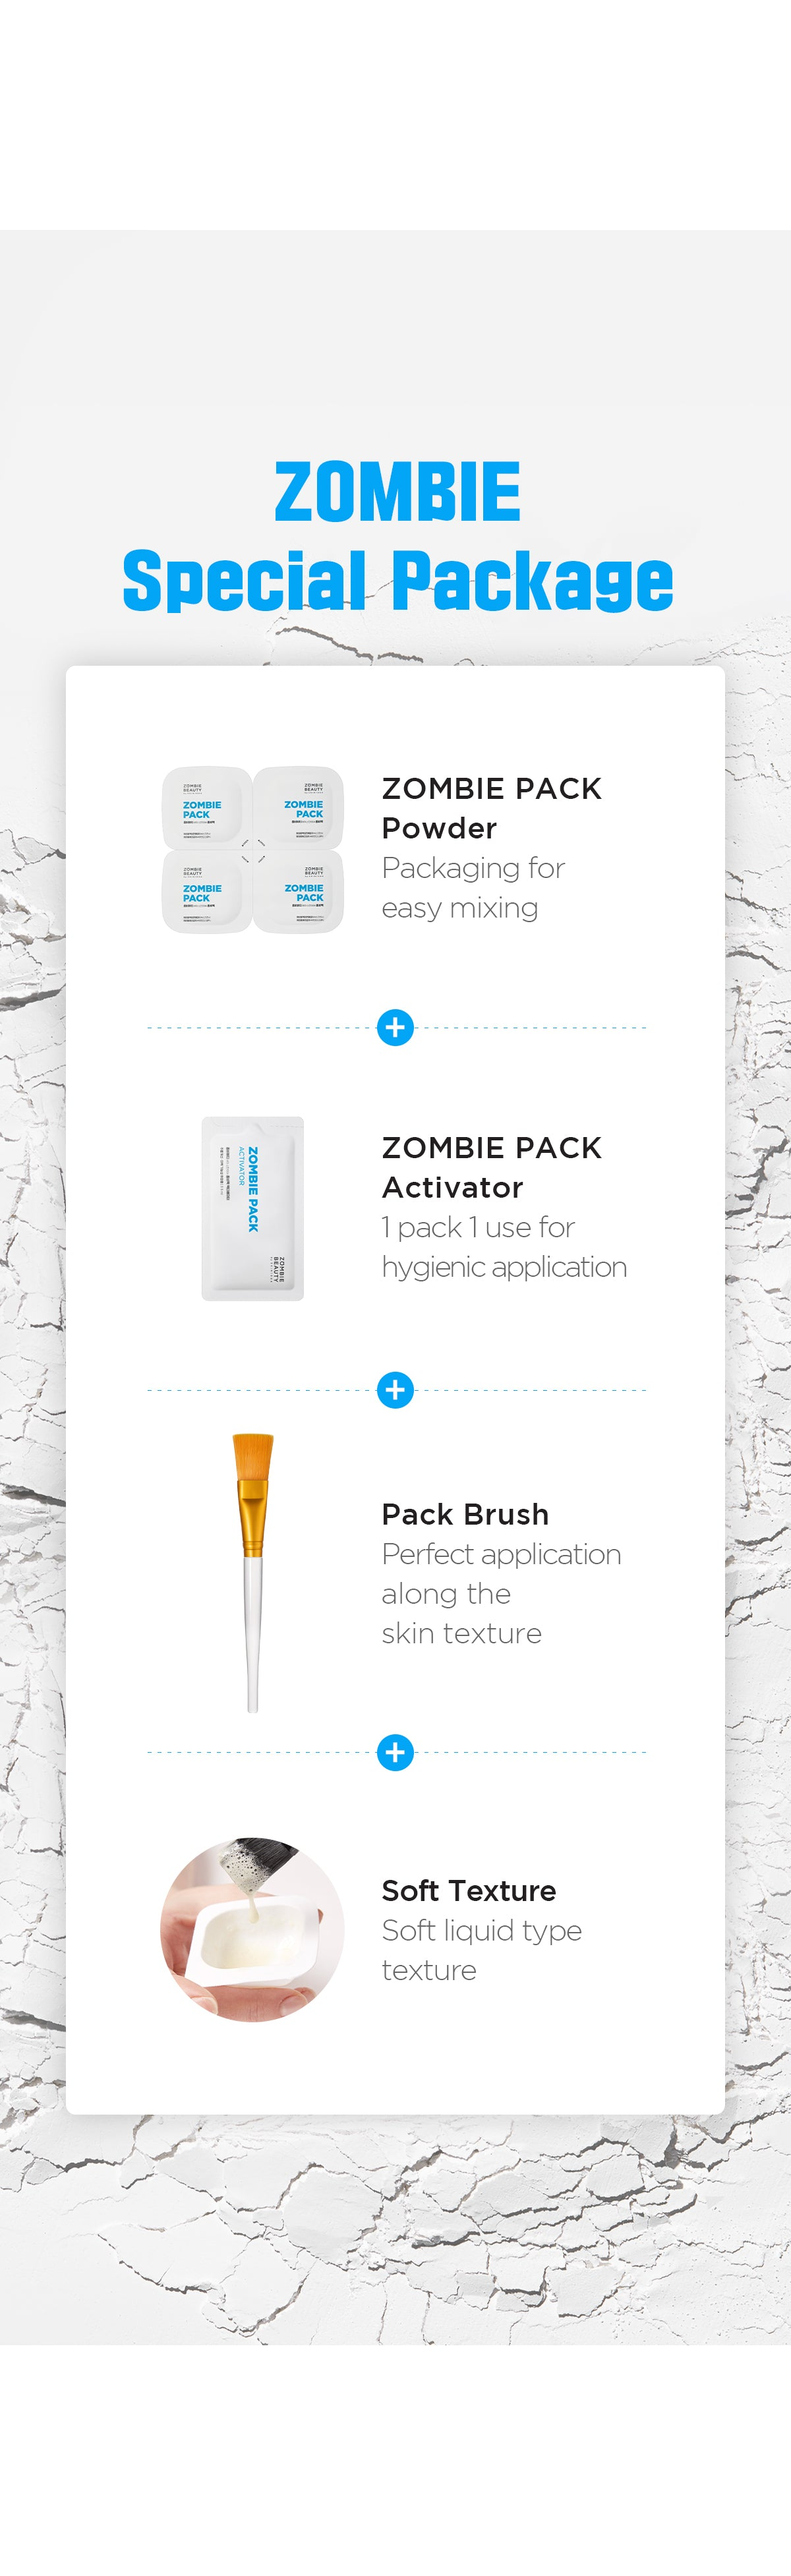 Zombie Pack & Activator Kit